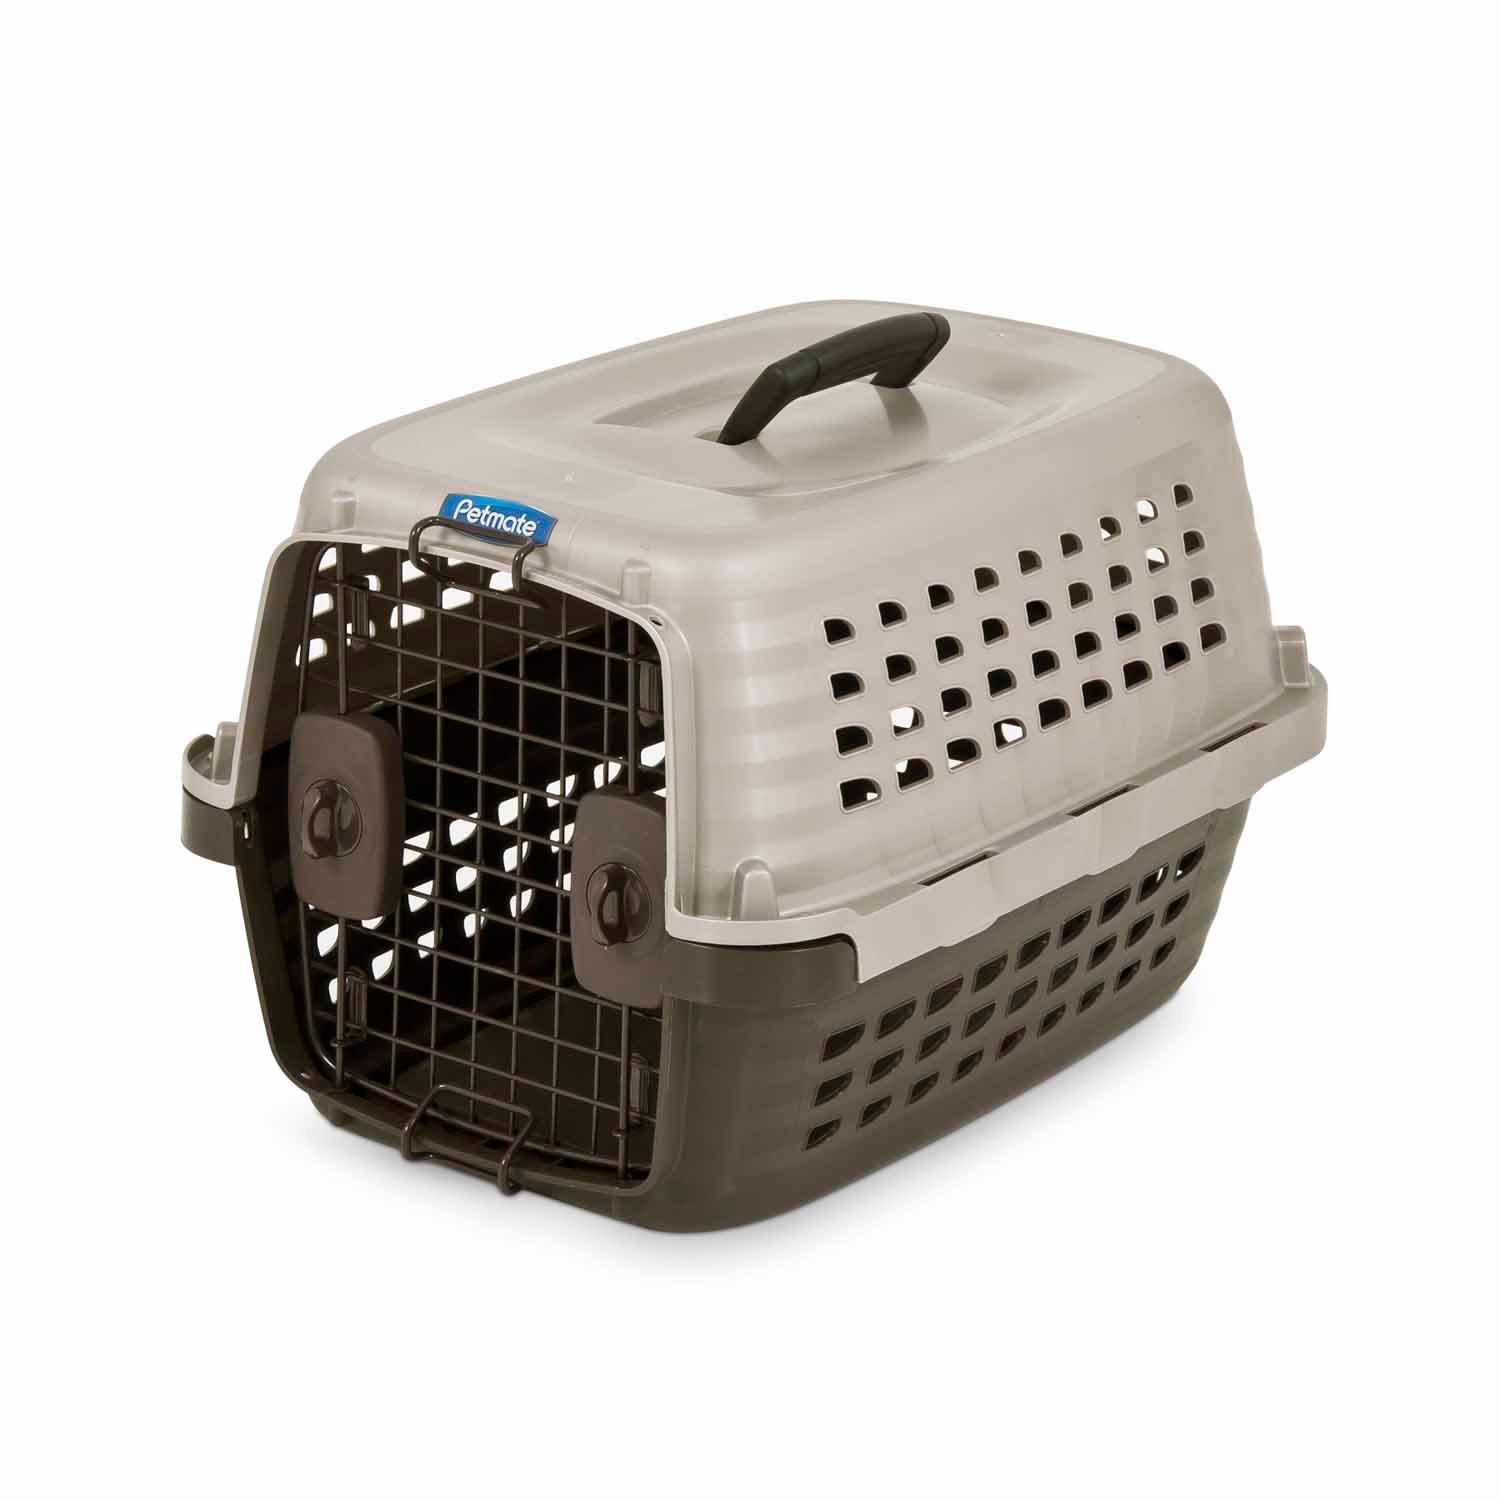 Petmate Navigator Pet Kennel